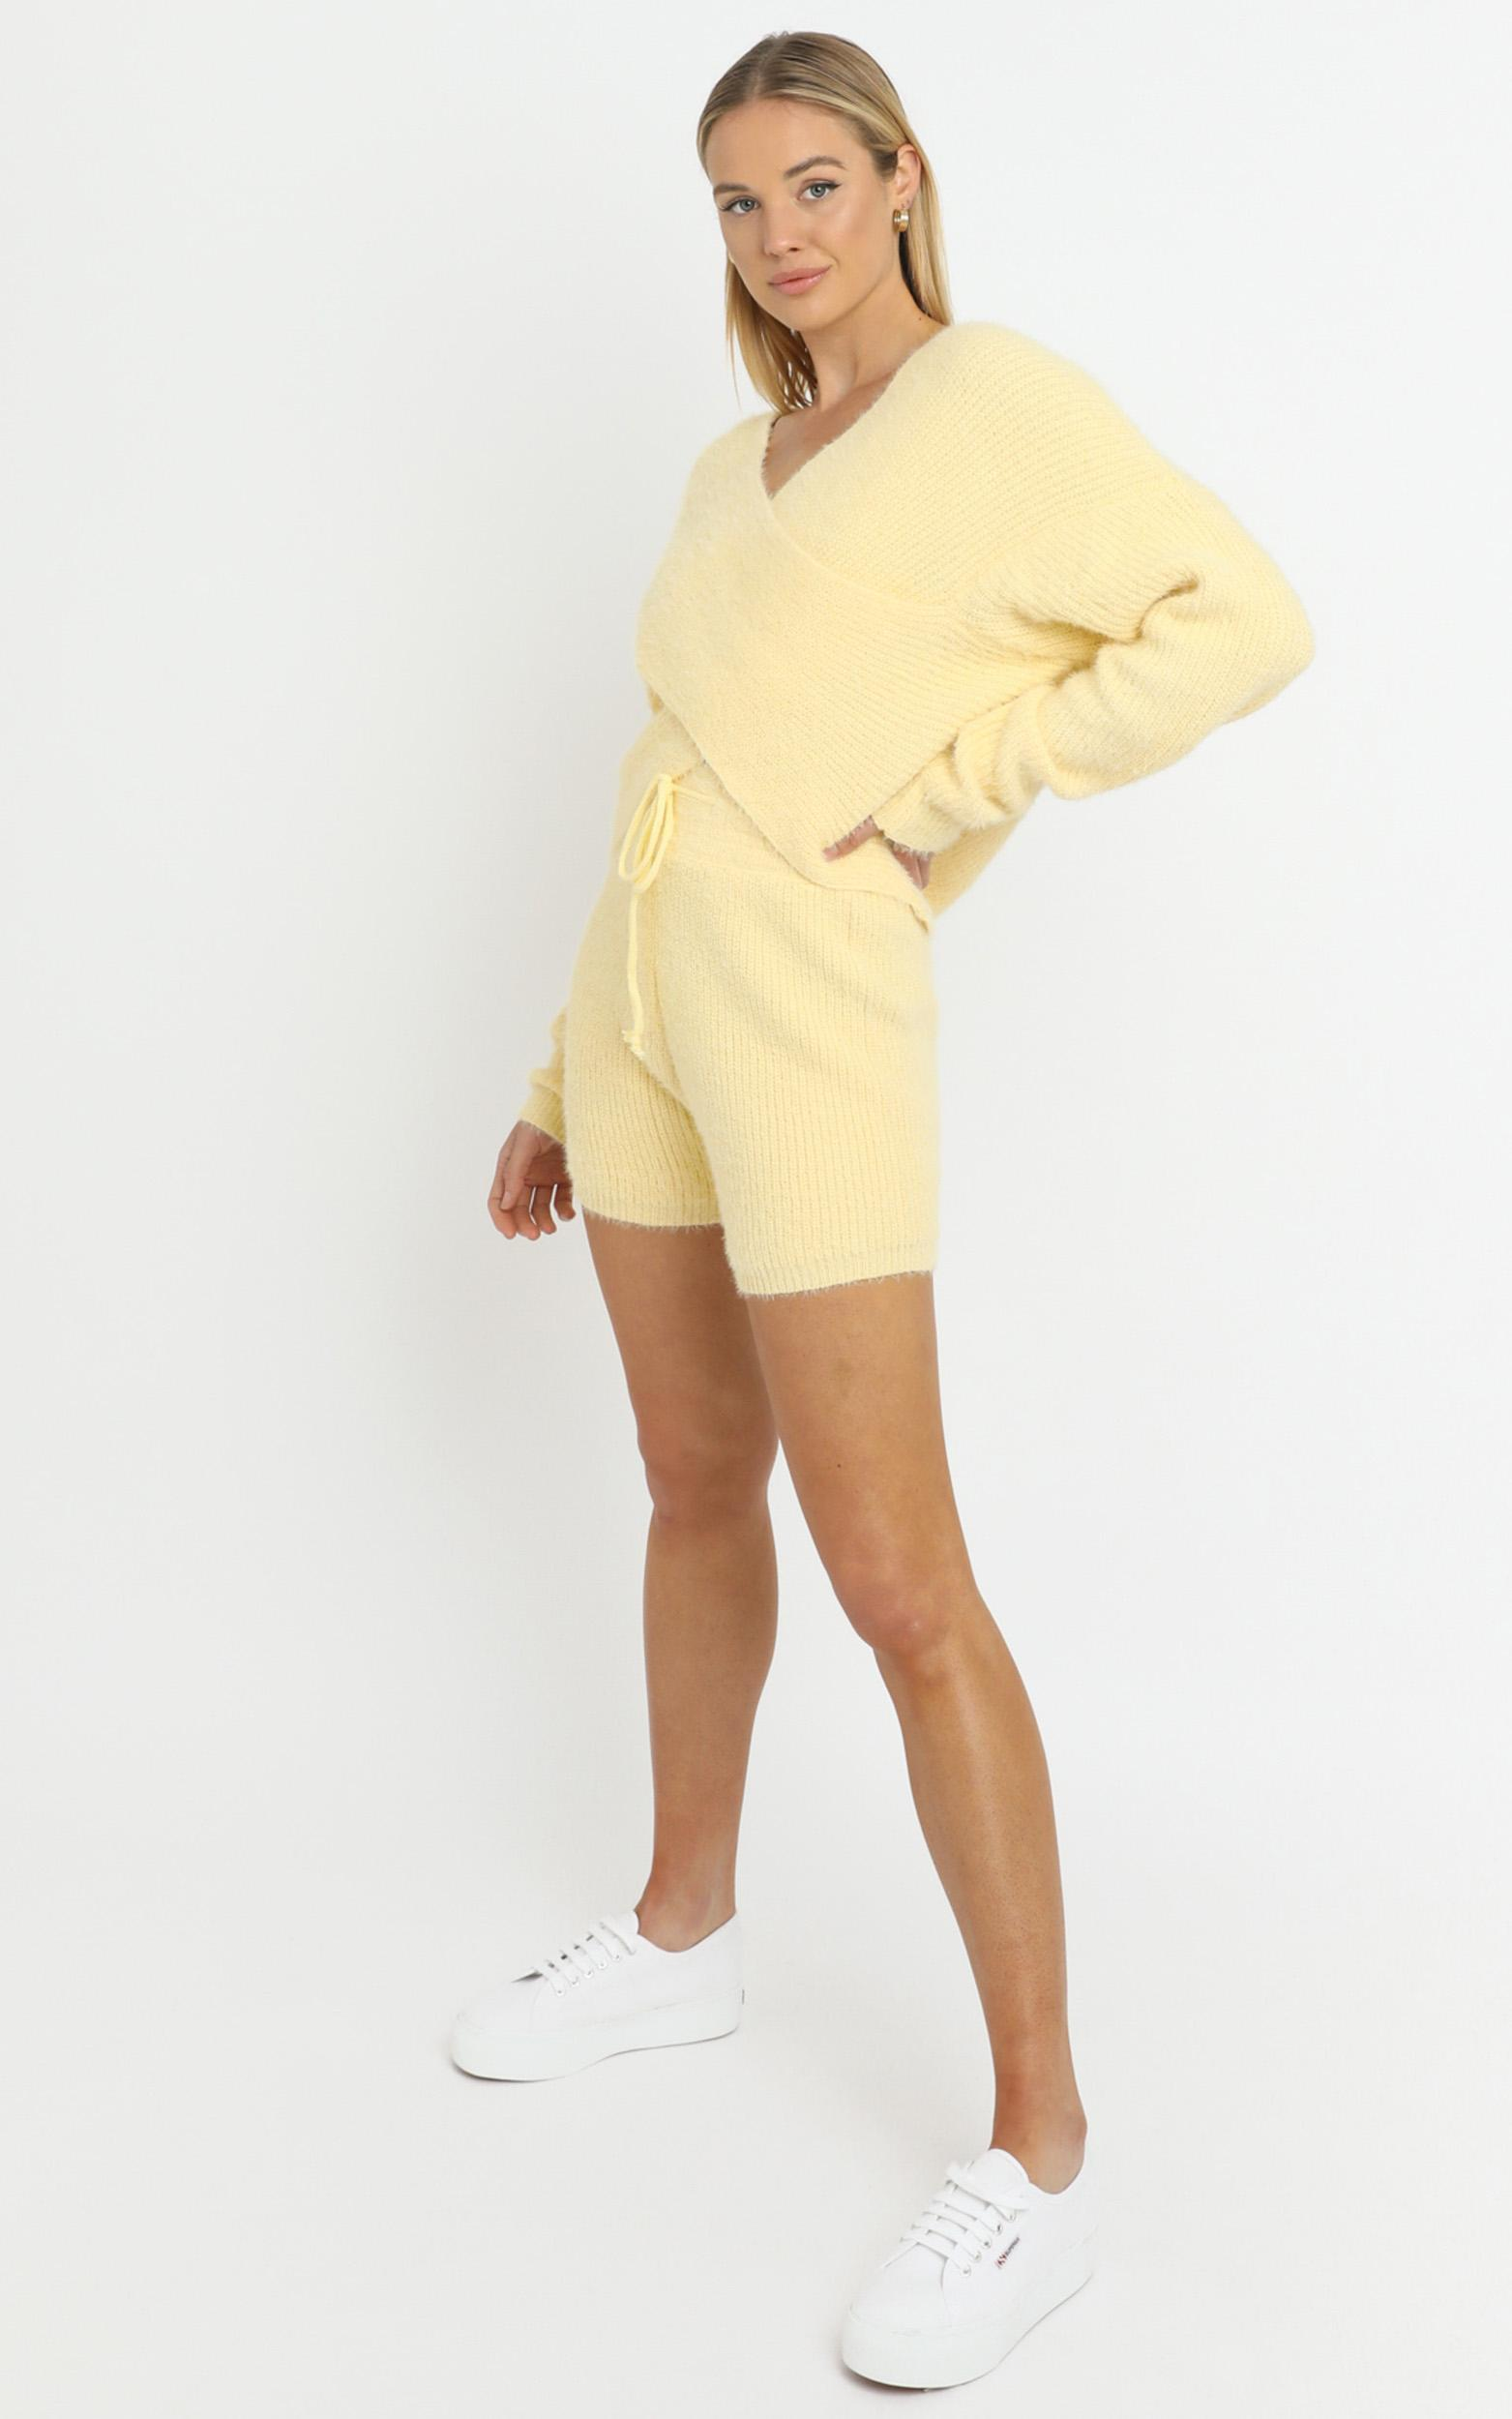 Cameron Two Piece Set in Yellow - M/L, Yellow, hi-res image number null